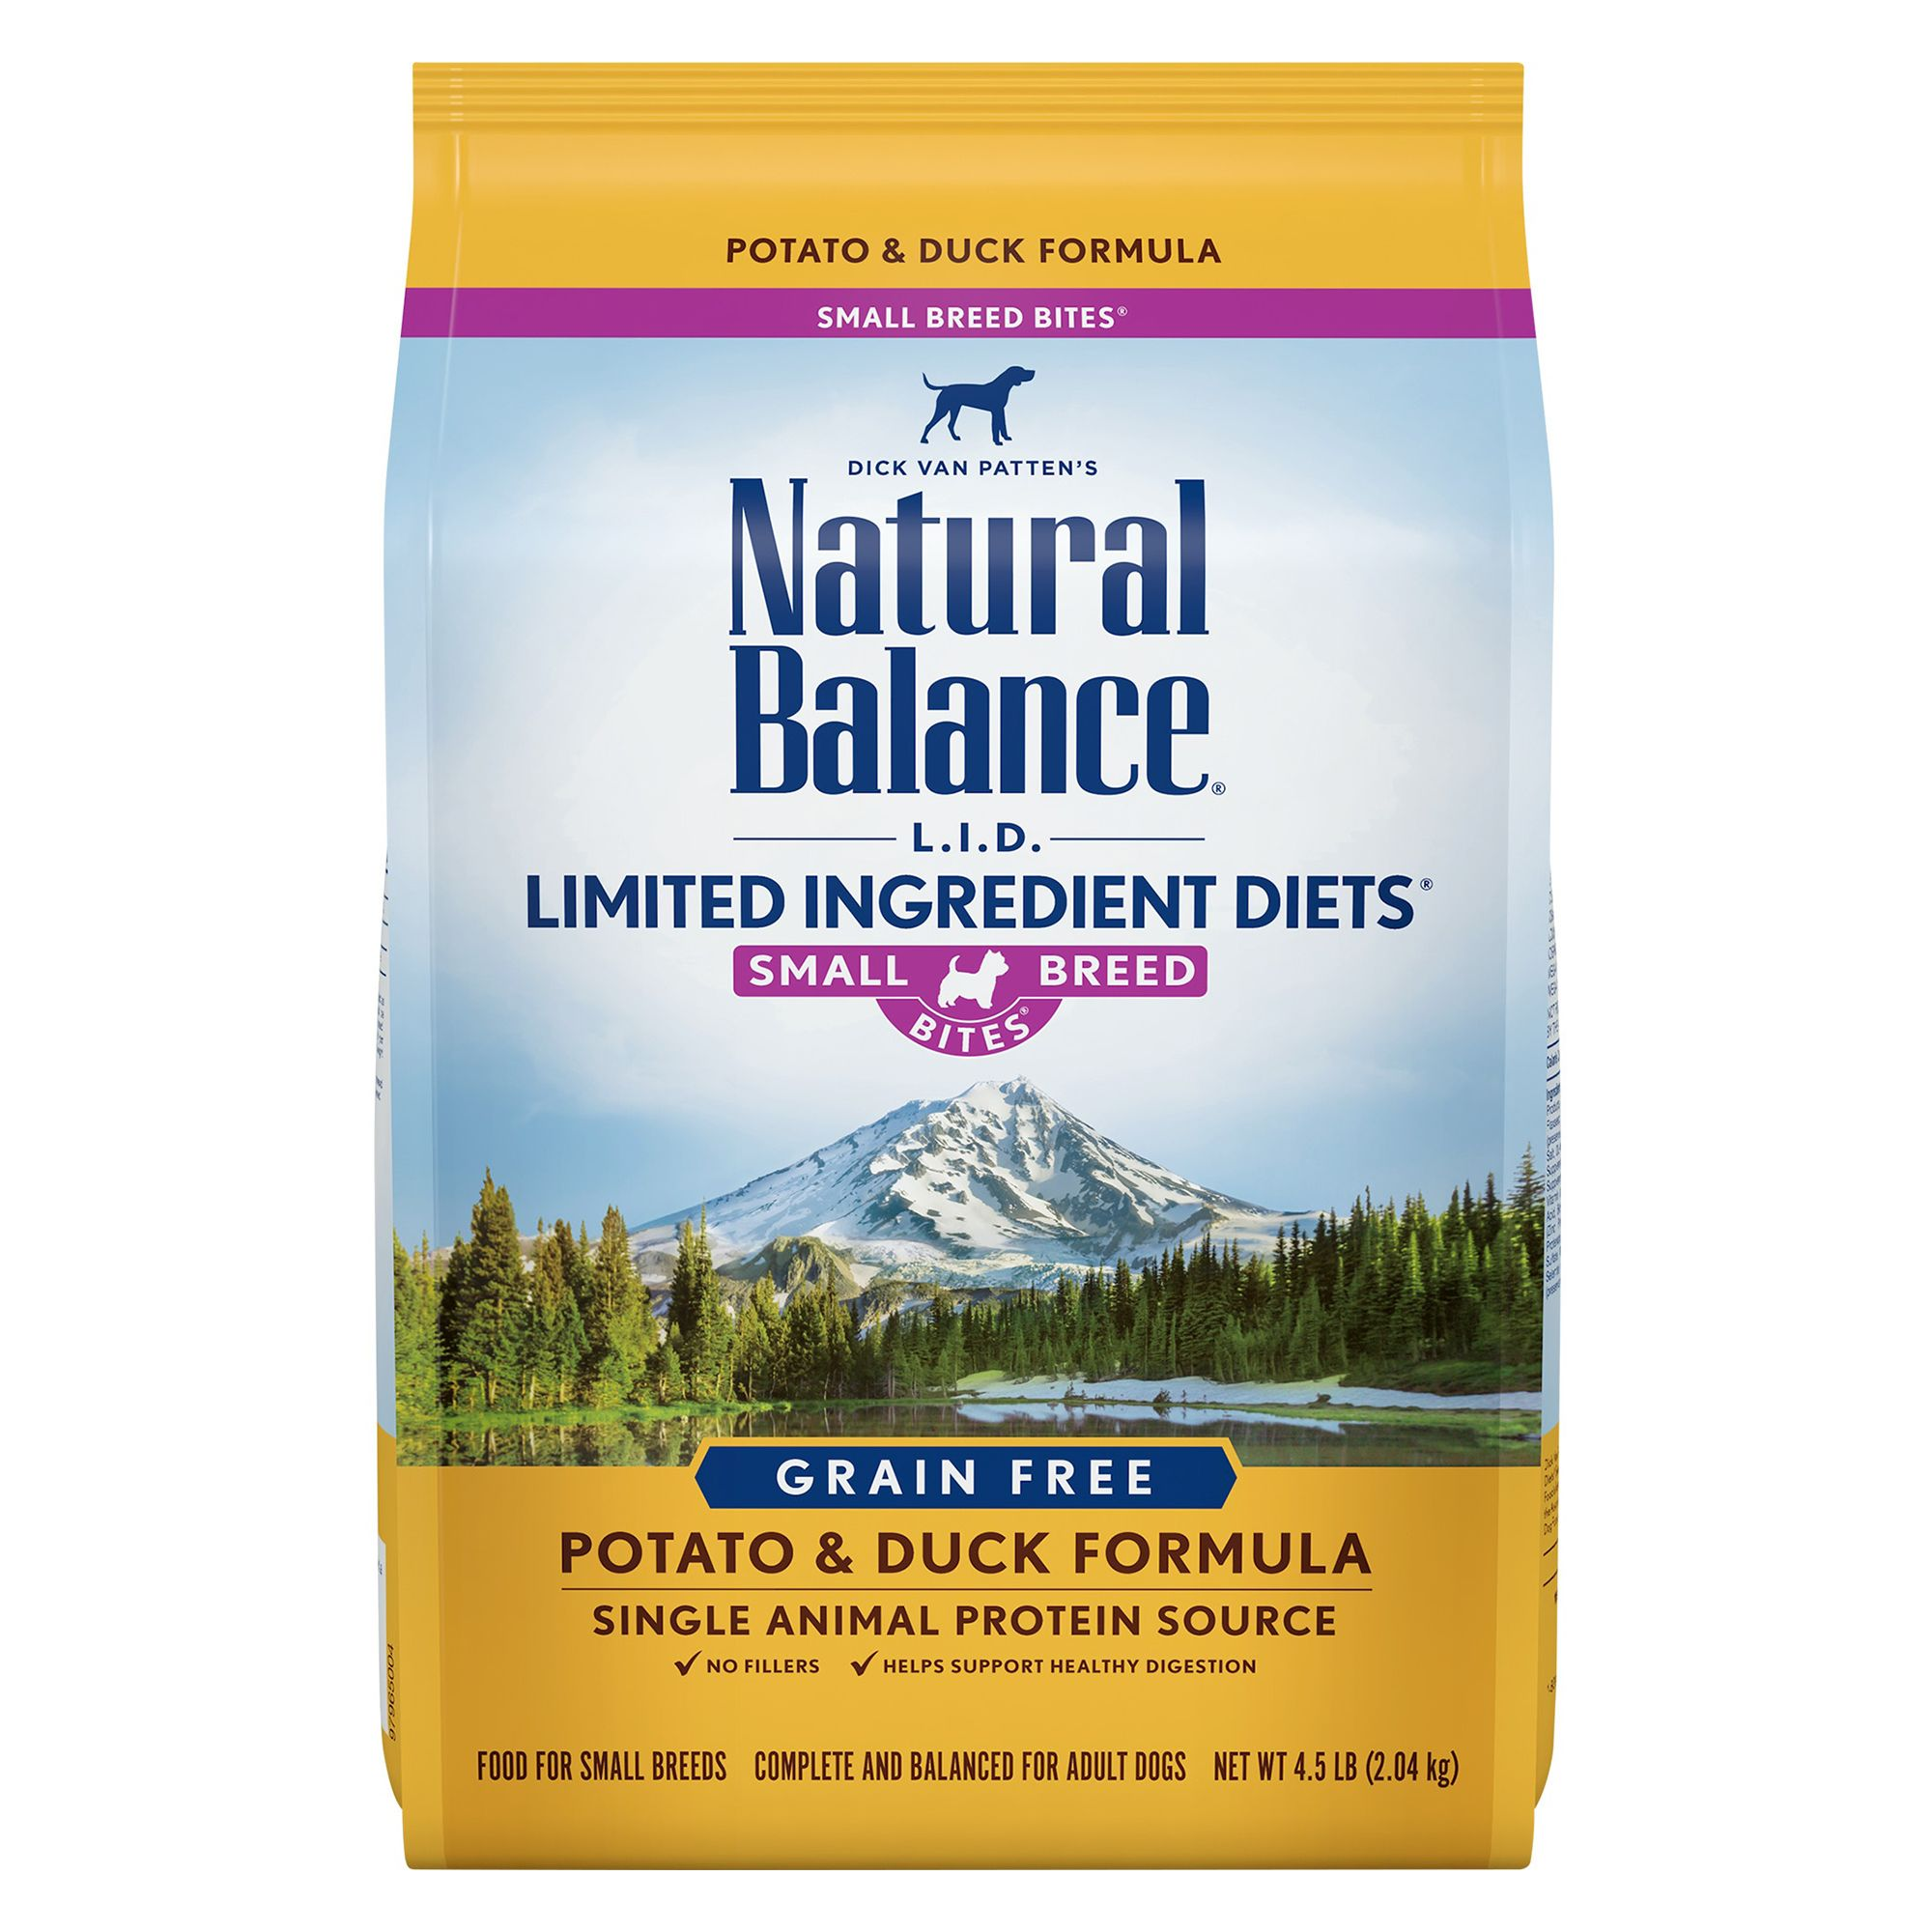 Natural Balance 4.5Lb Limited Ingredient Diets Dog Food - Grain Free, Potato & Duck, Small Breed